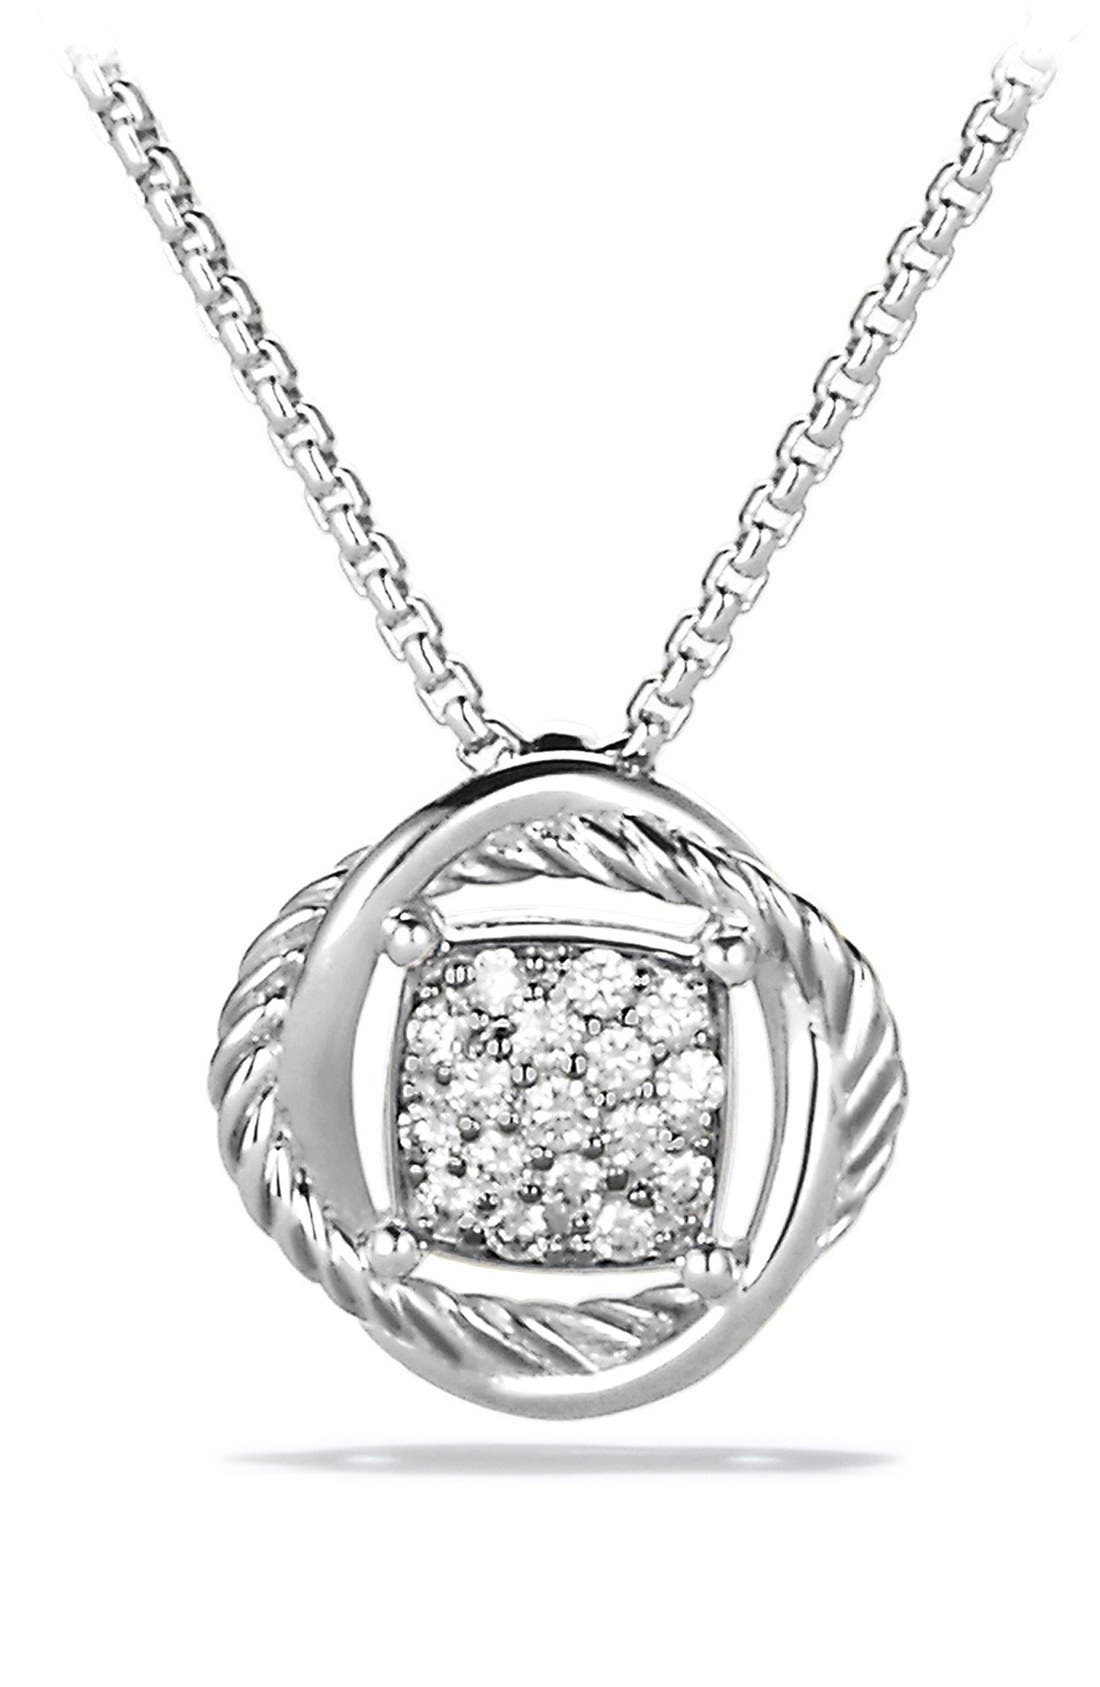 David Yurman 'Infinity' Pendant with Diamonds on Chain